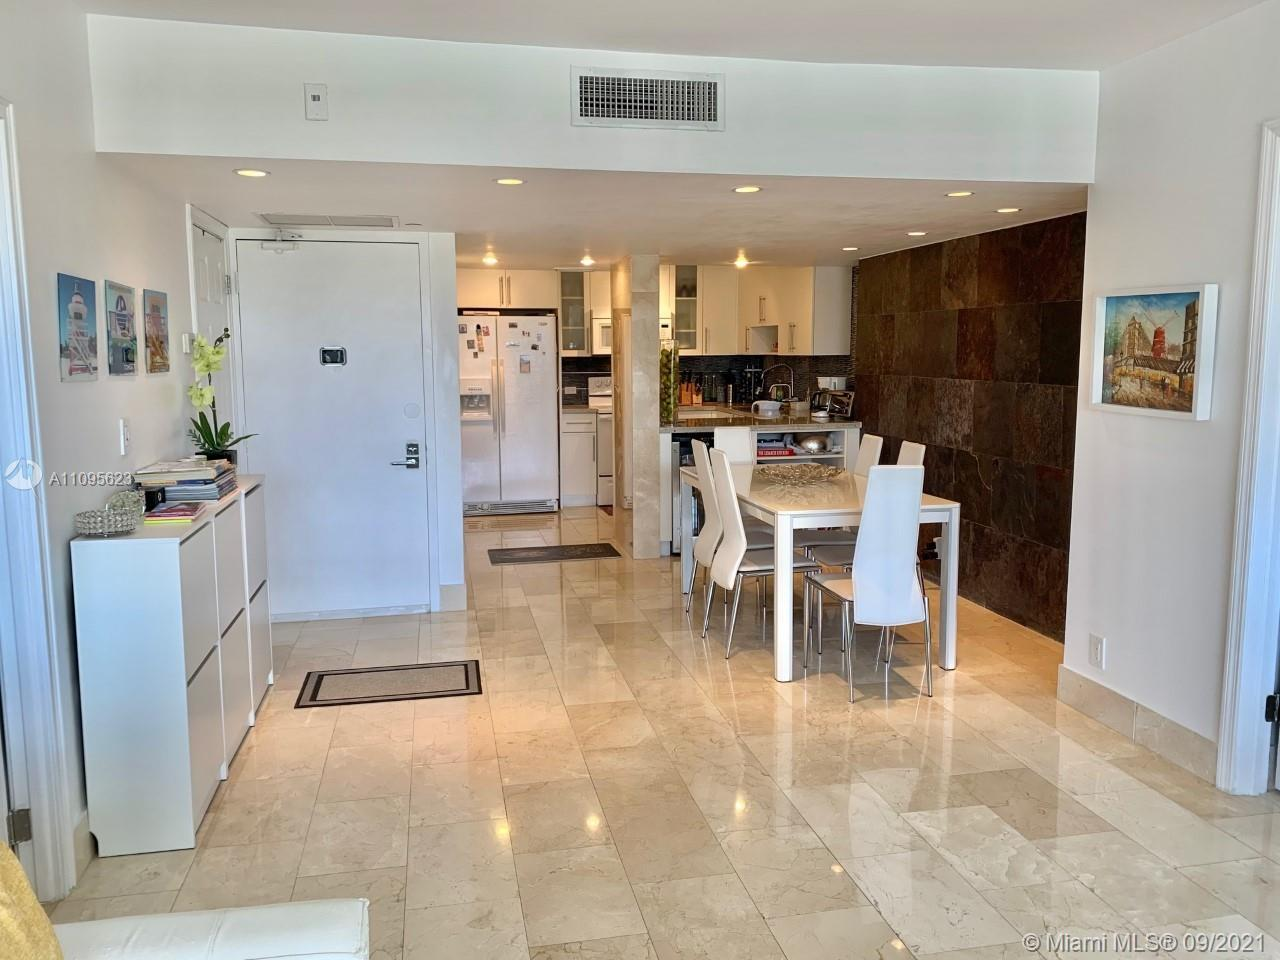 GREAT PRICE for this Bright and spacious 2/2 located on the 3rd floor of the prestigious Coronado To